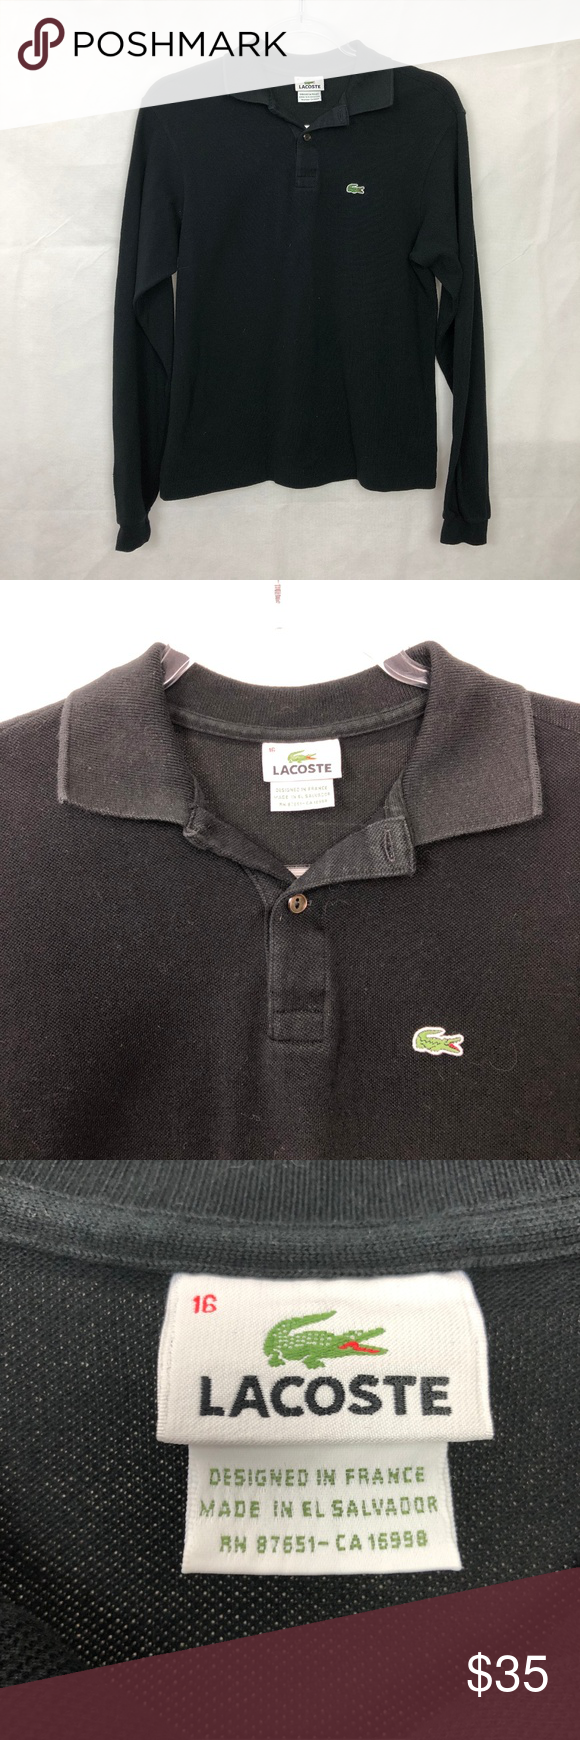 e51ae8656 LaCoste Youth Black Long Sleeve Polo Shirt 16 -LaCoste youth boys black  long sleeve polo shirt -Size 16 -100% cotton -Laying flat -Underarm to  Underarm 18' ...